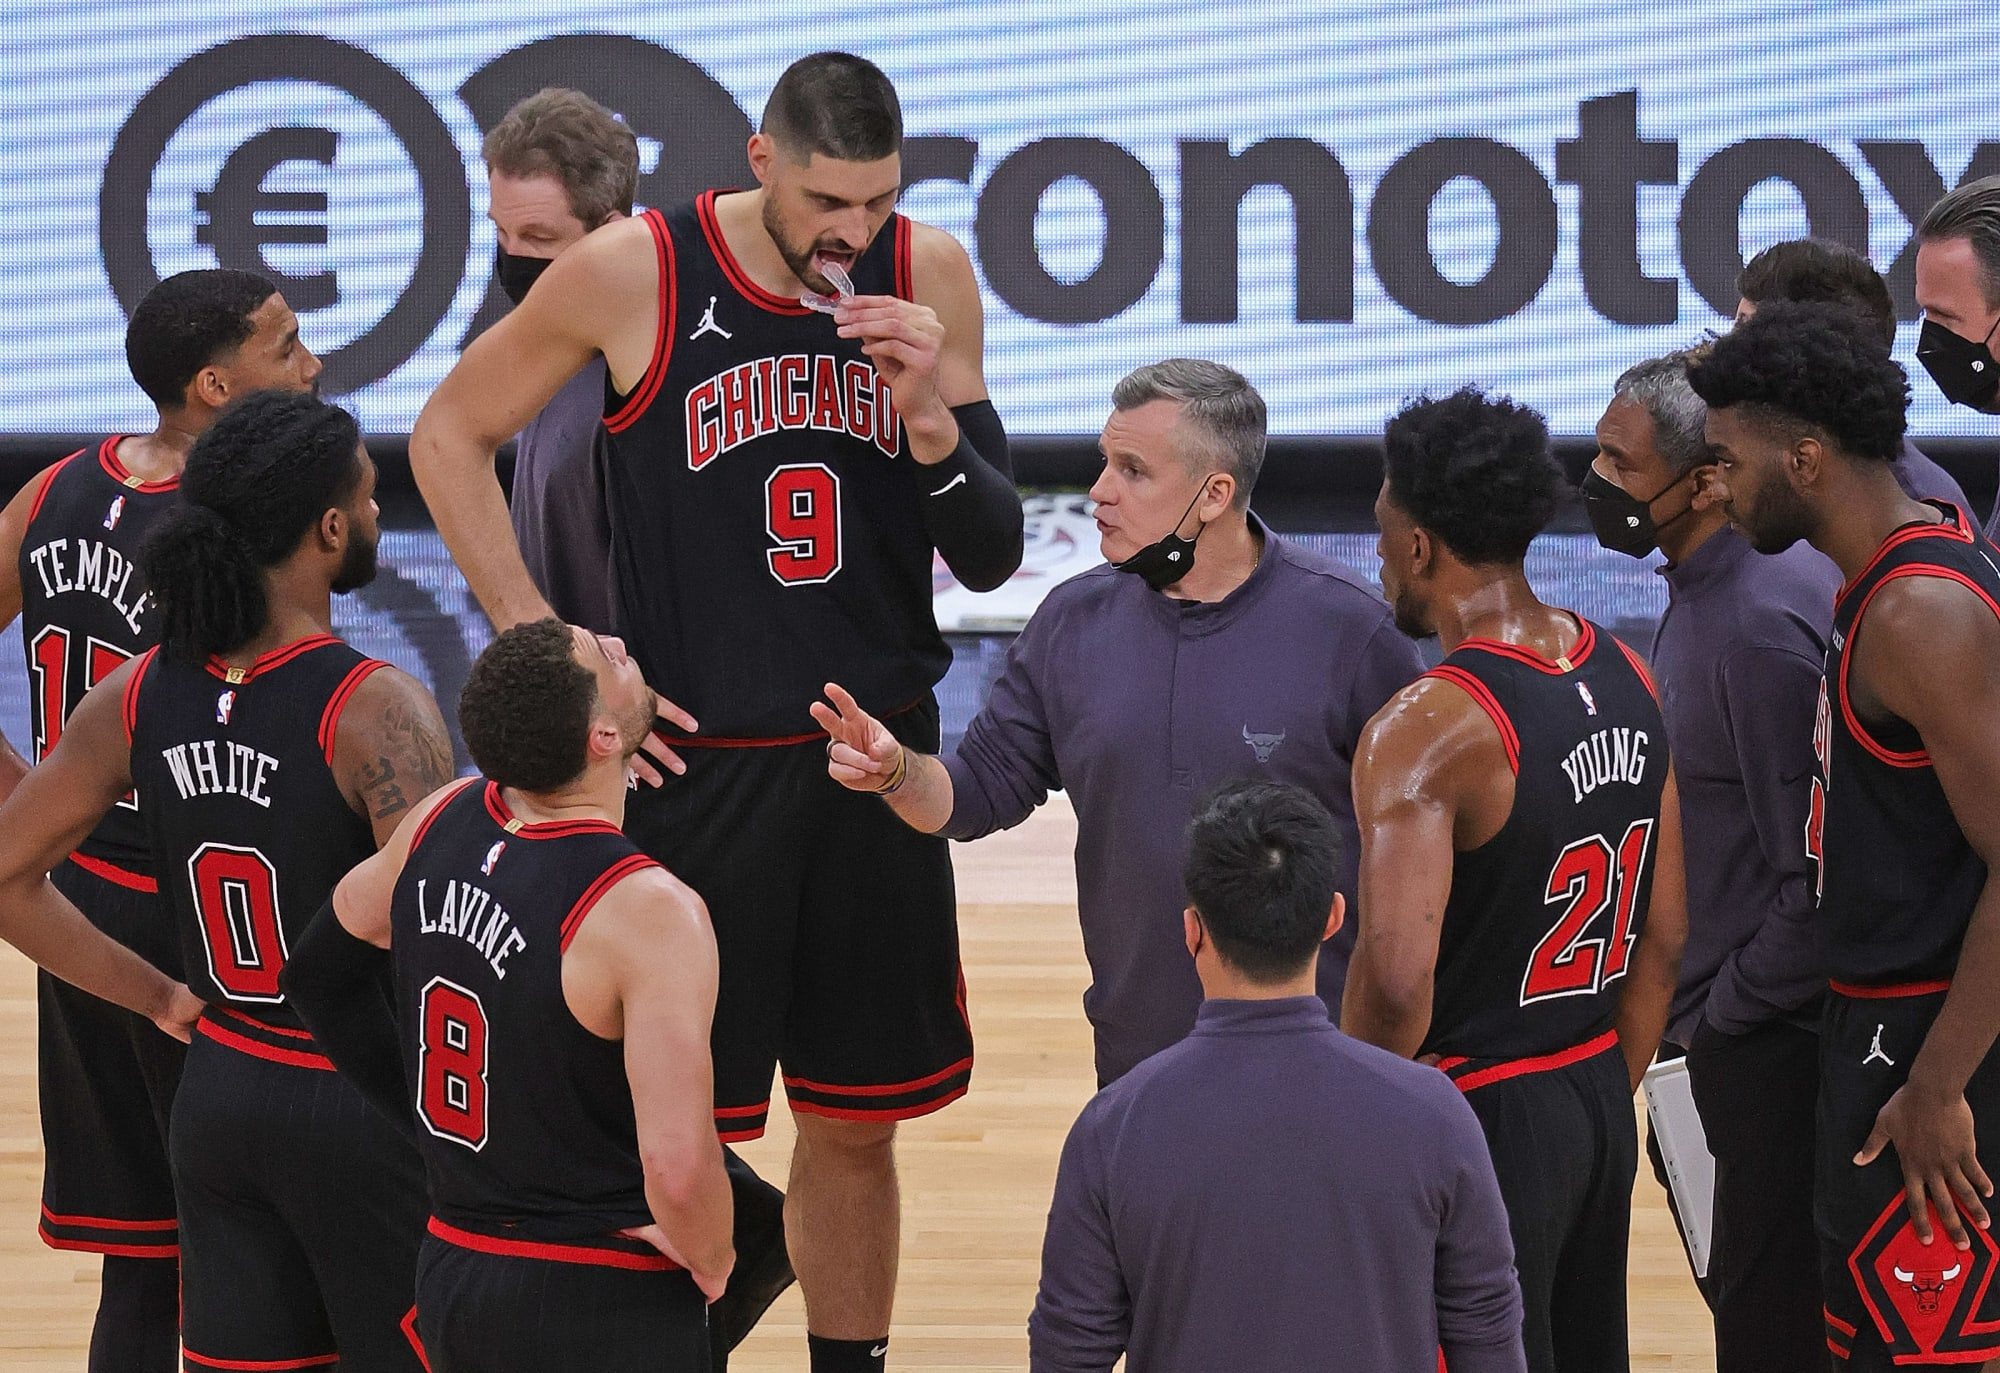 Chicago Bulls: It's clear this team is still a work in progress